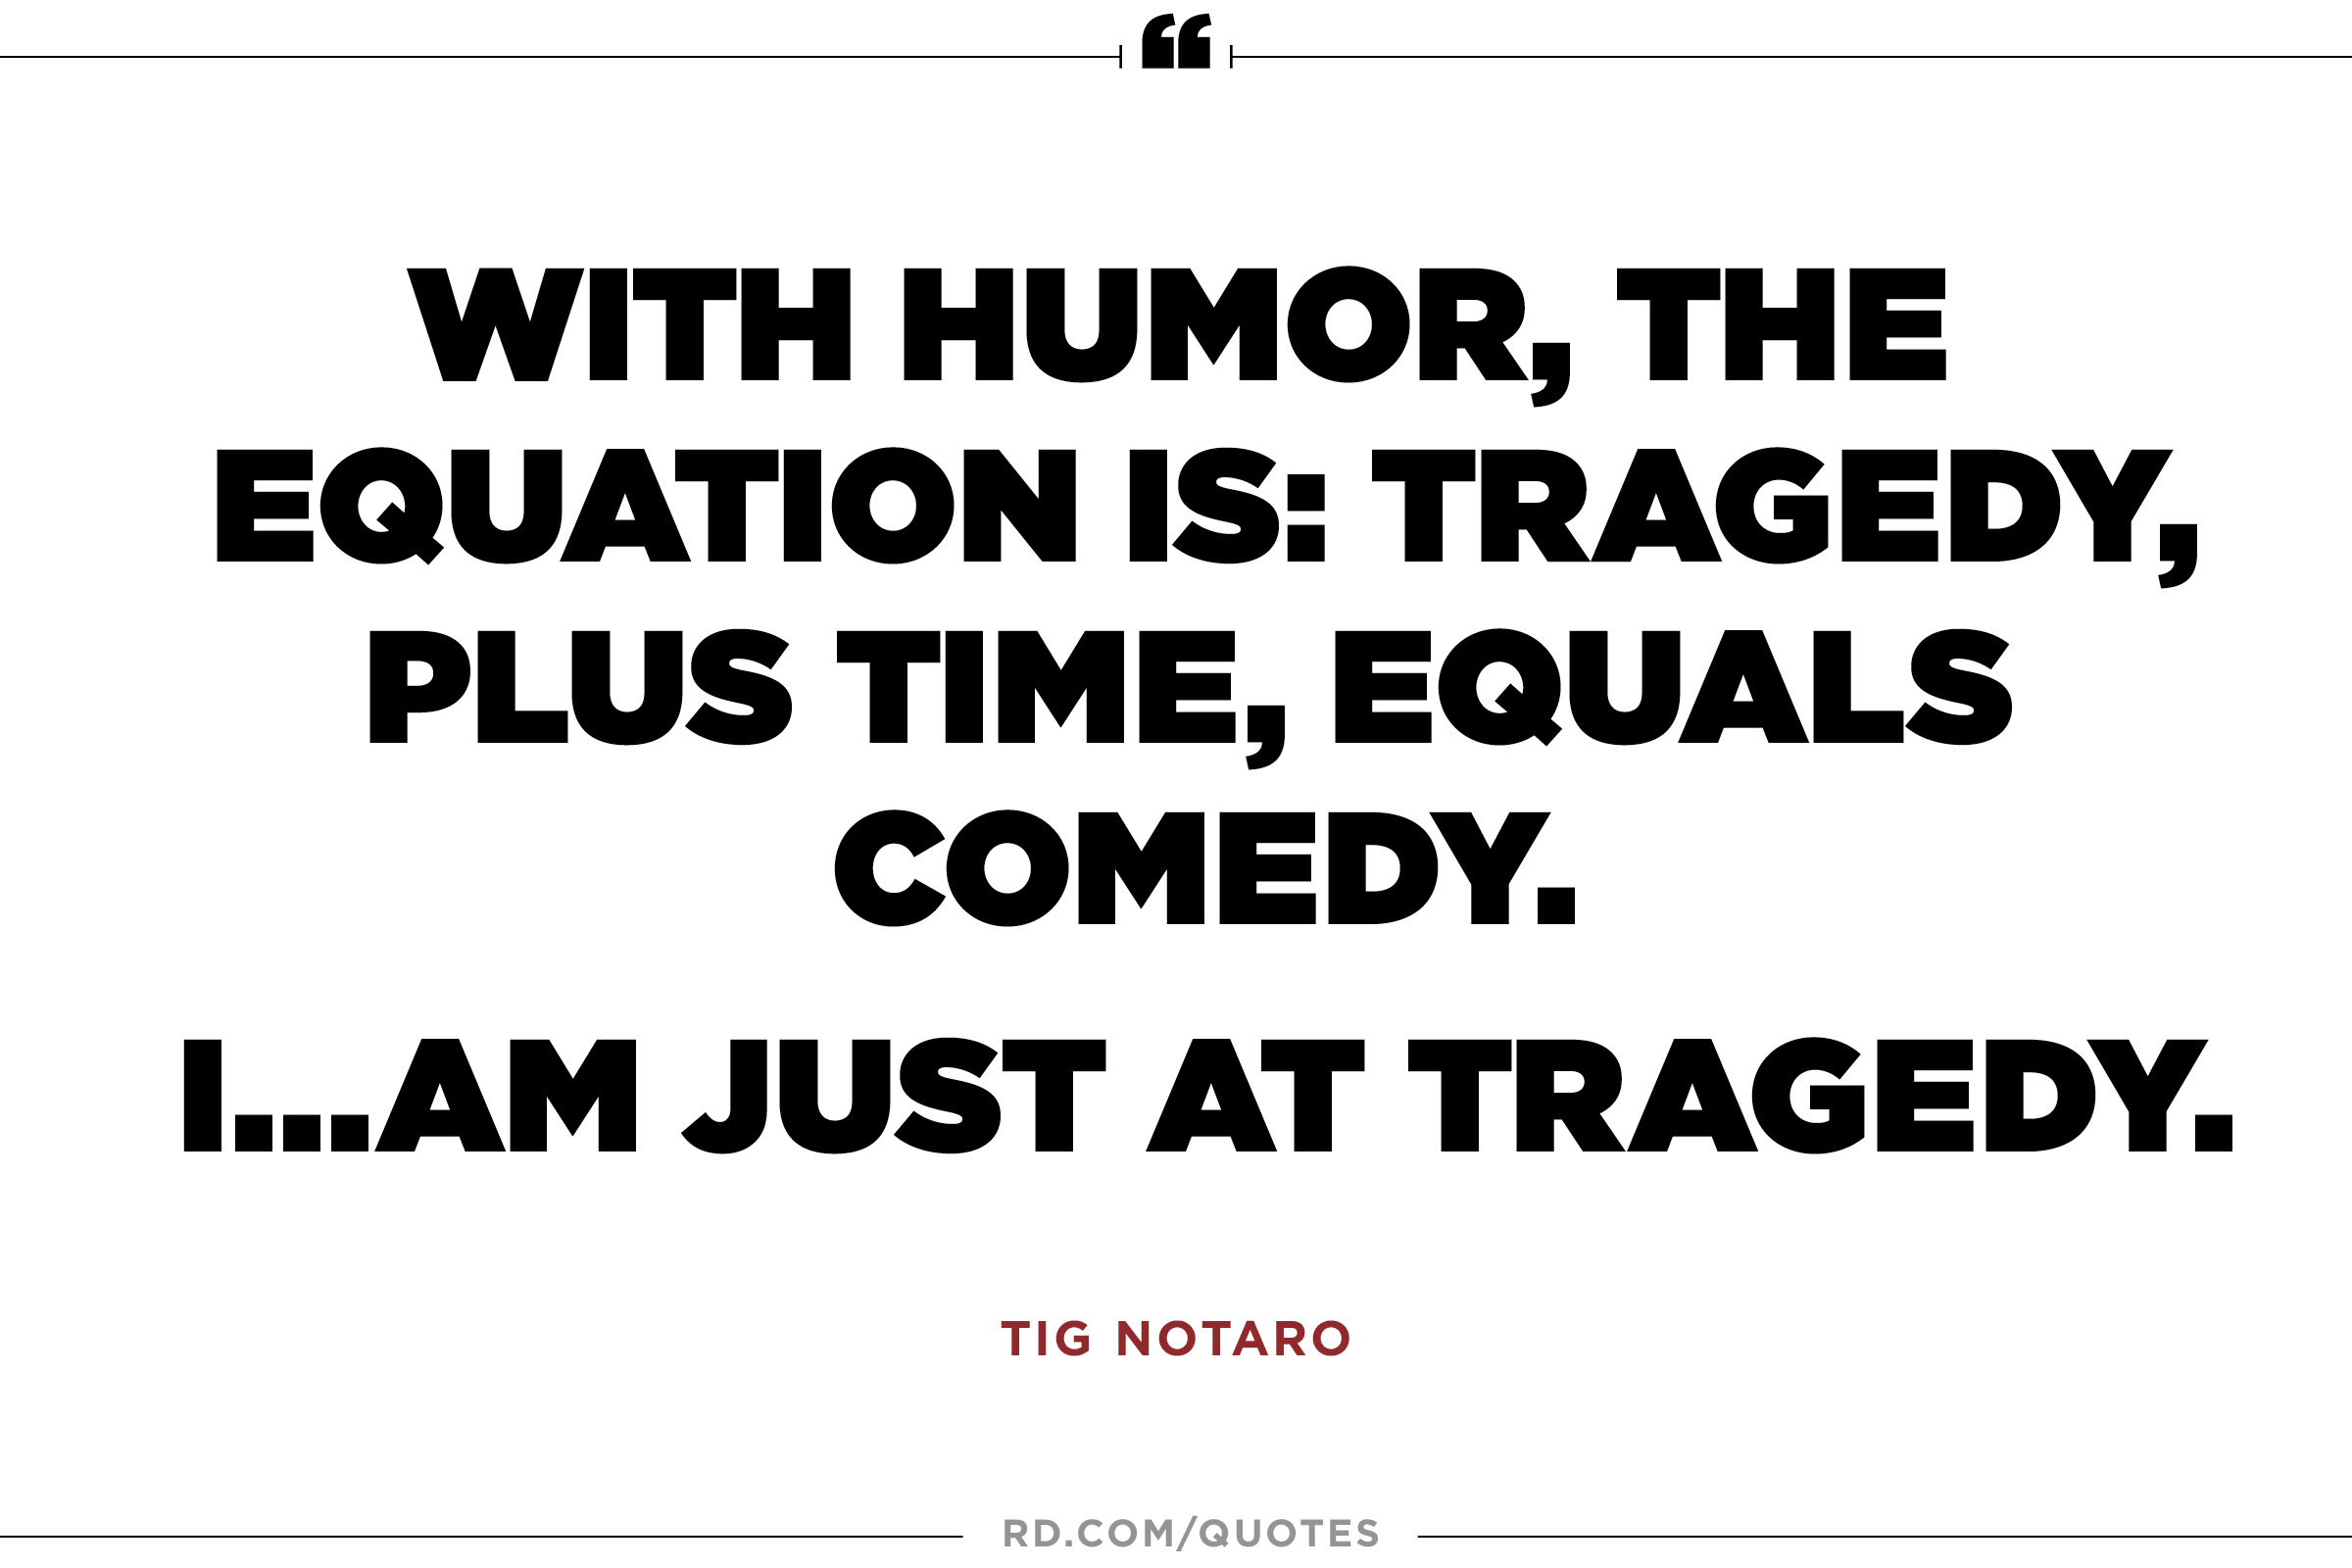 Images of Humor | 2400x1600